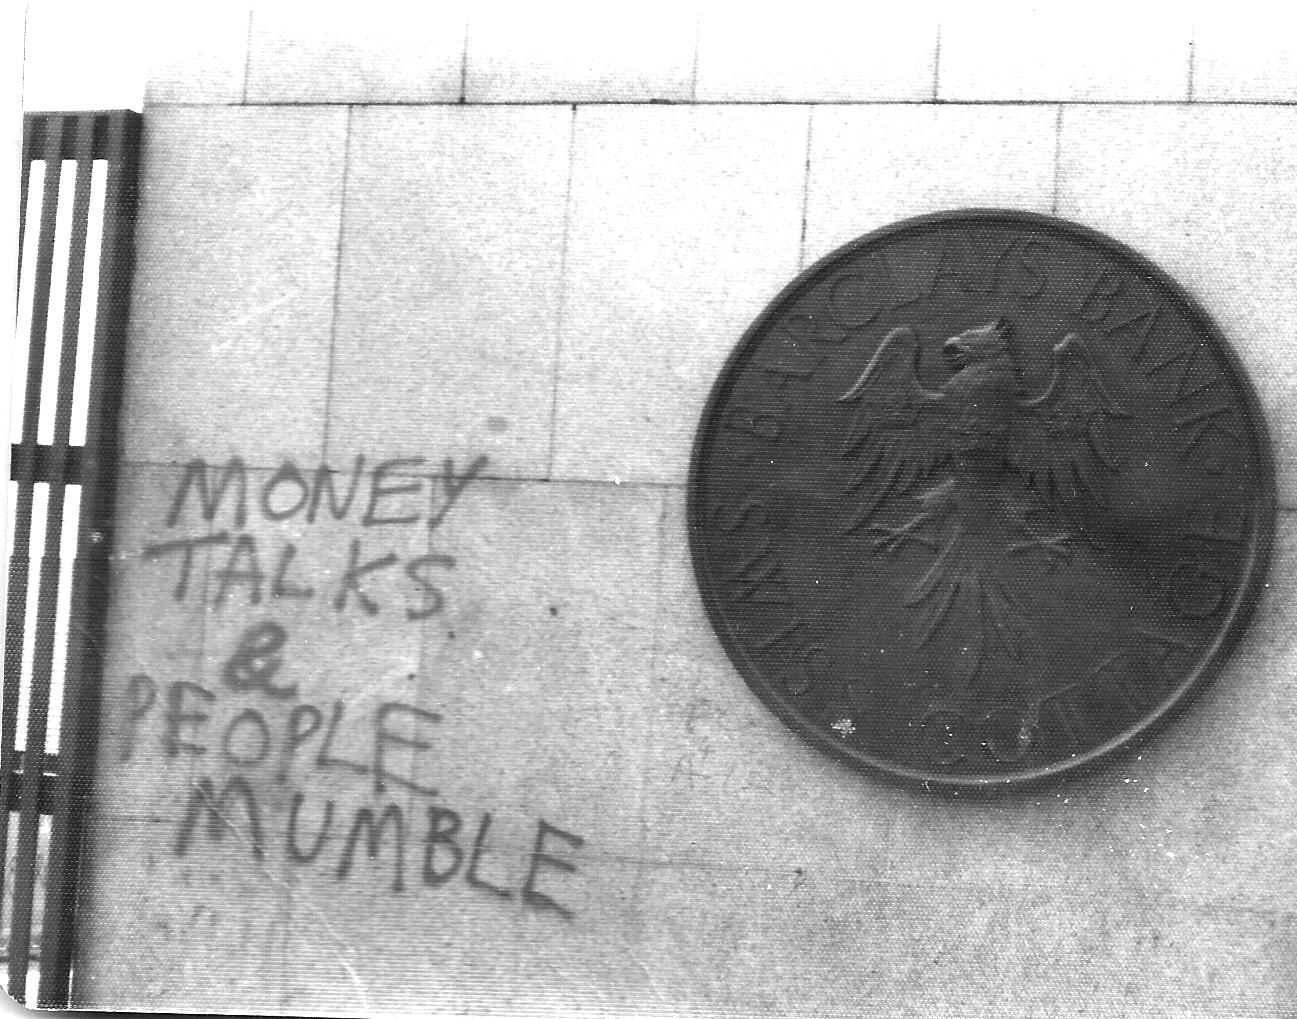 graffiti money talks